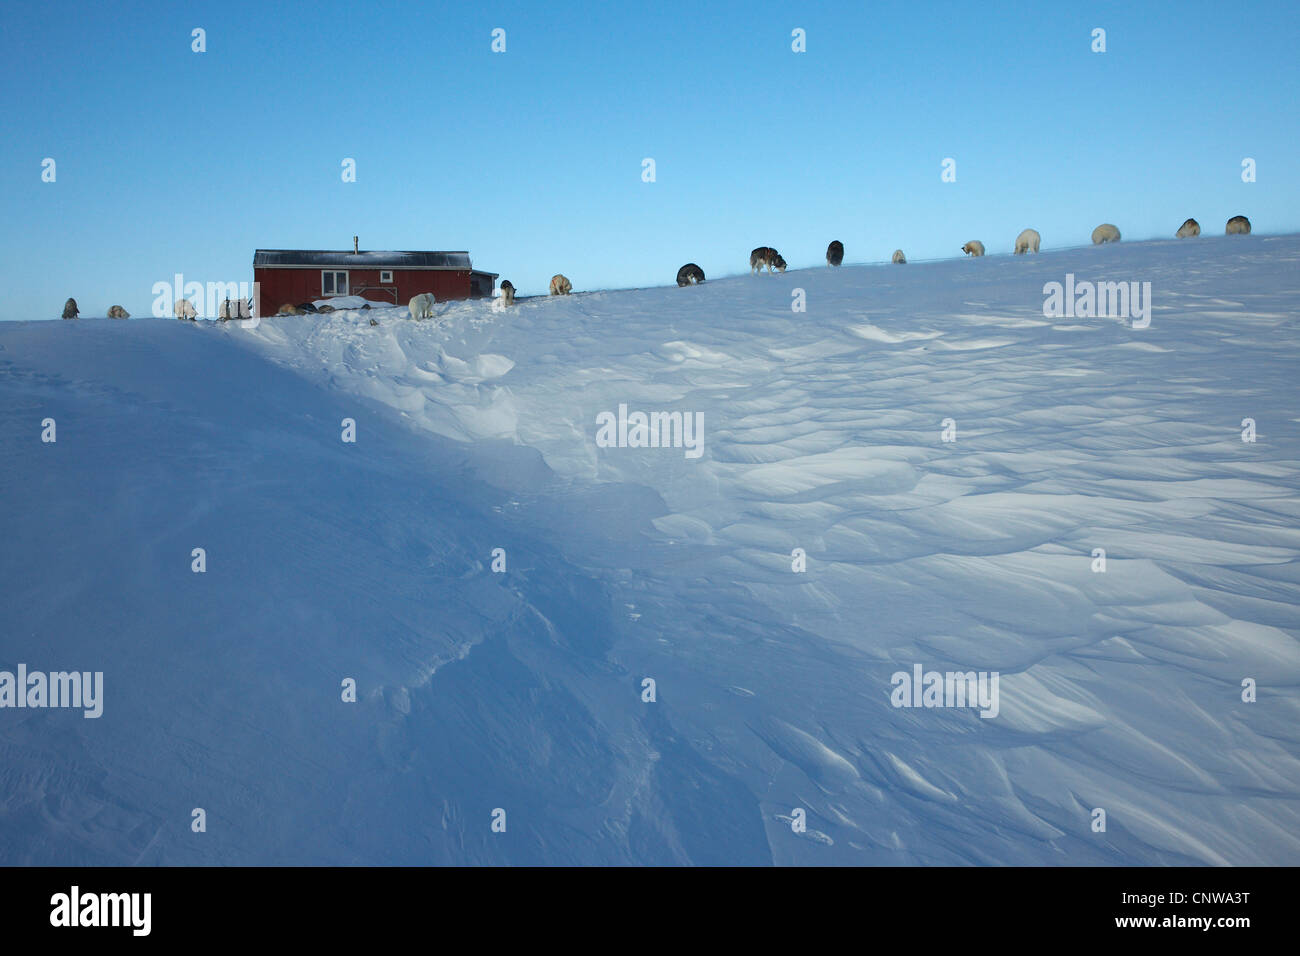 Greenland Dog (Canis lupus f. familiaris), row of slegde dogs in front of hunting lodge serving as polar bear watch - Stock Image